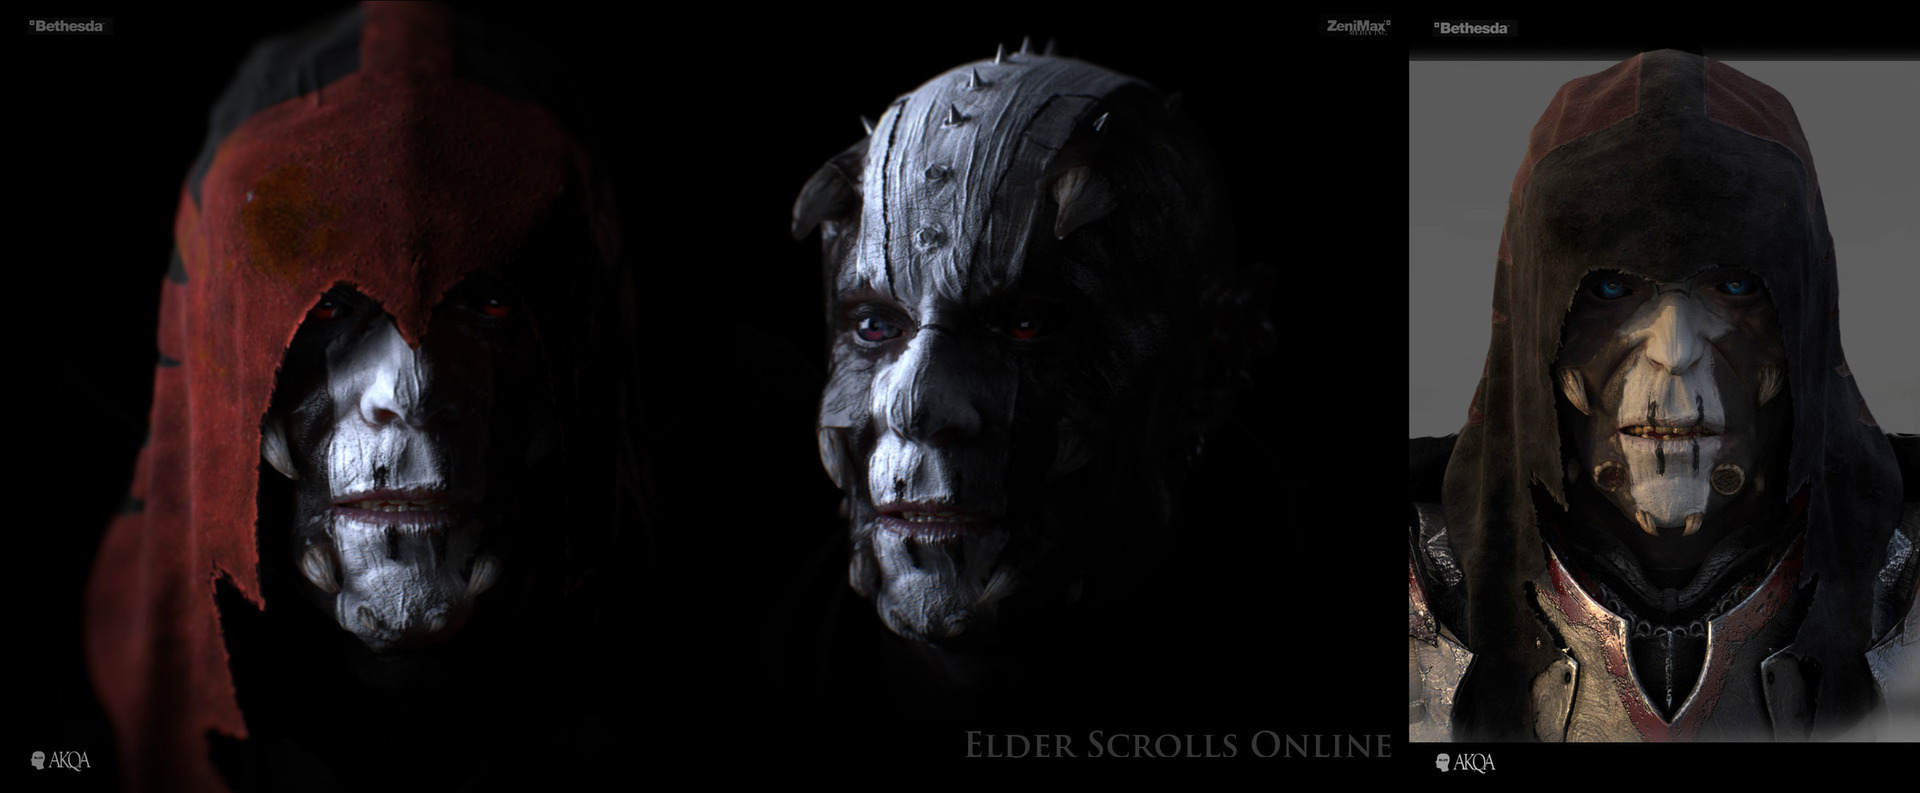 Artwork for Blur Studio's cinematic for Bethesda Softworks' Elder Scrolls Online.